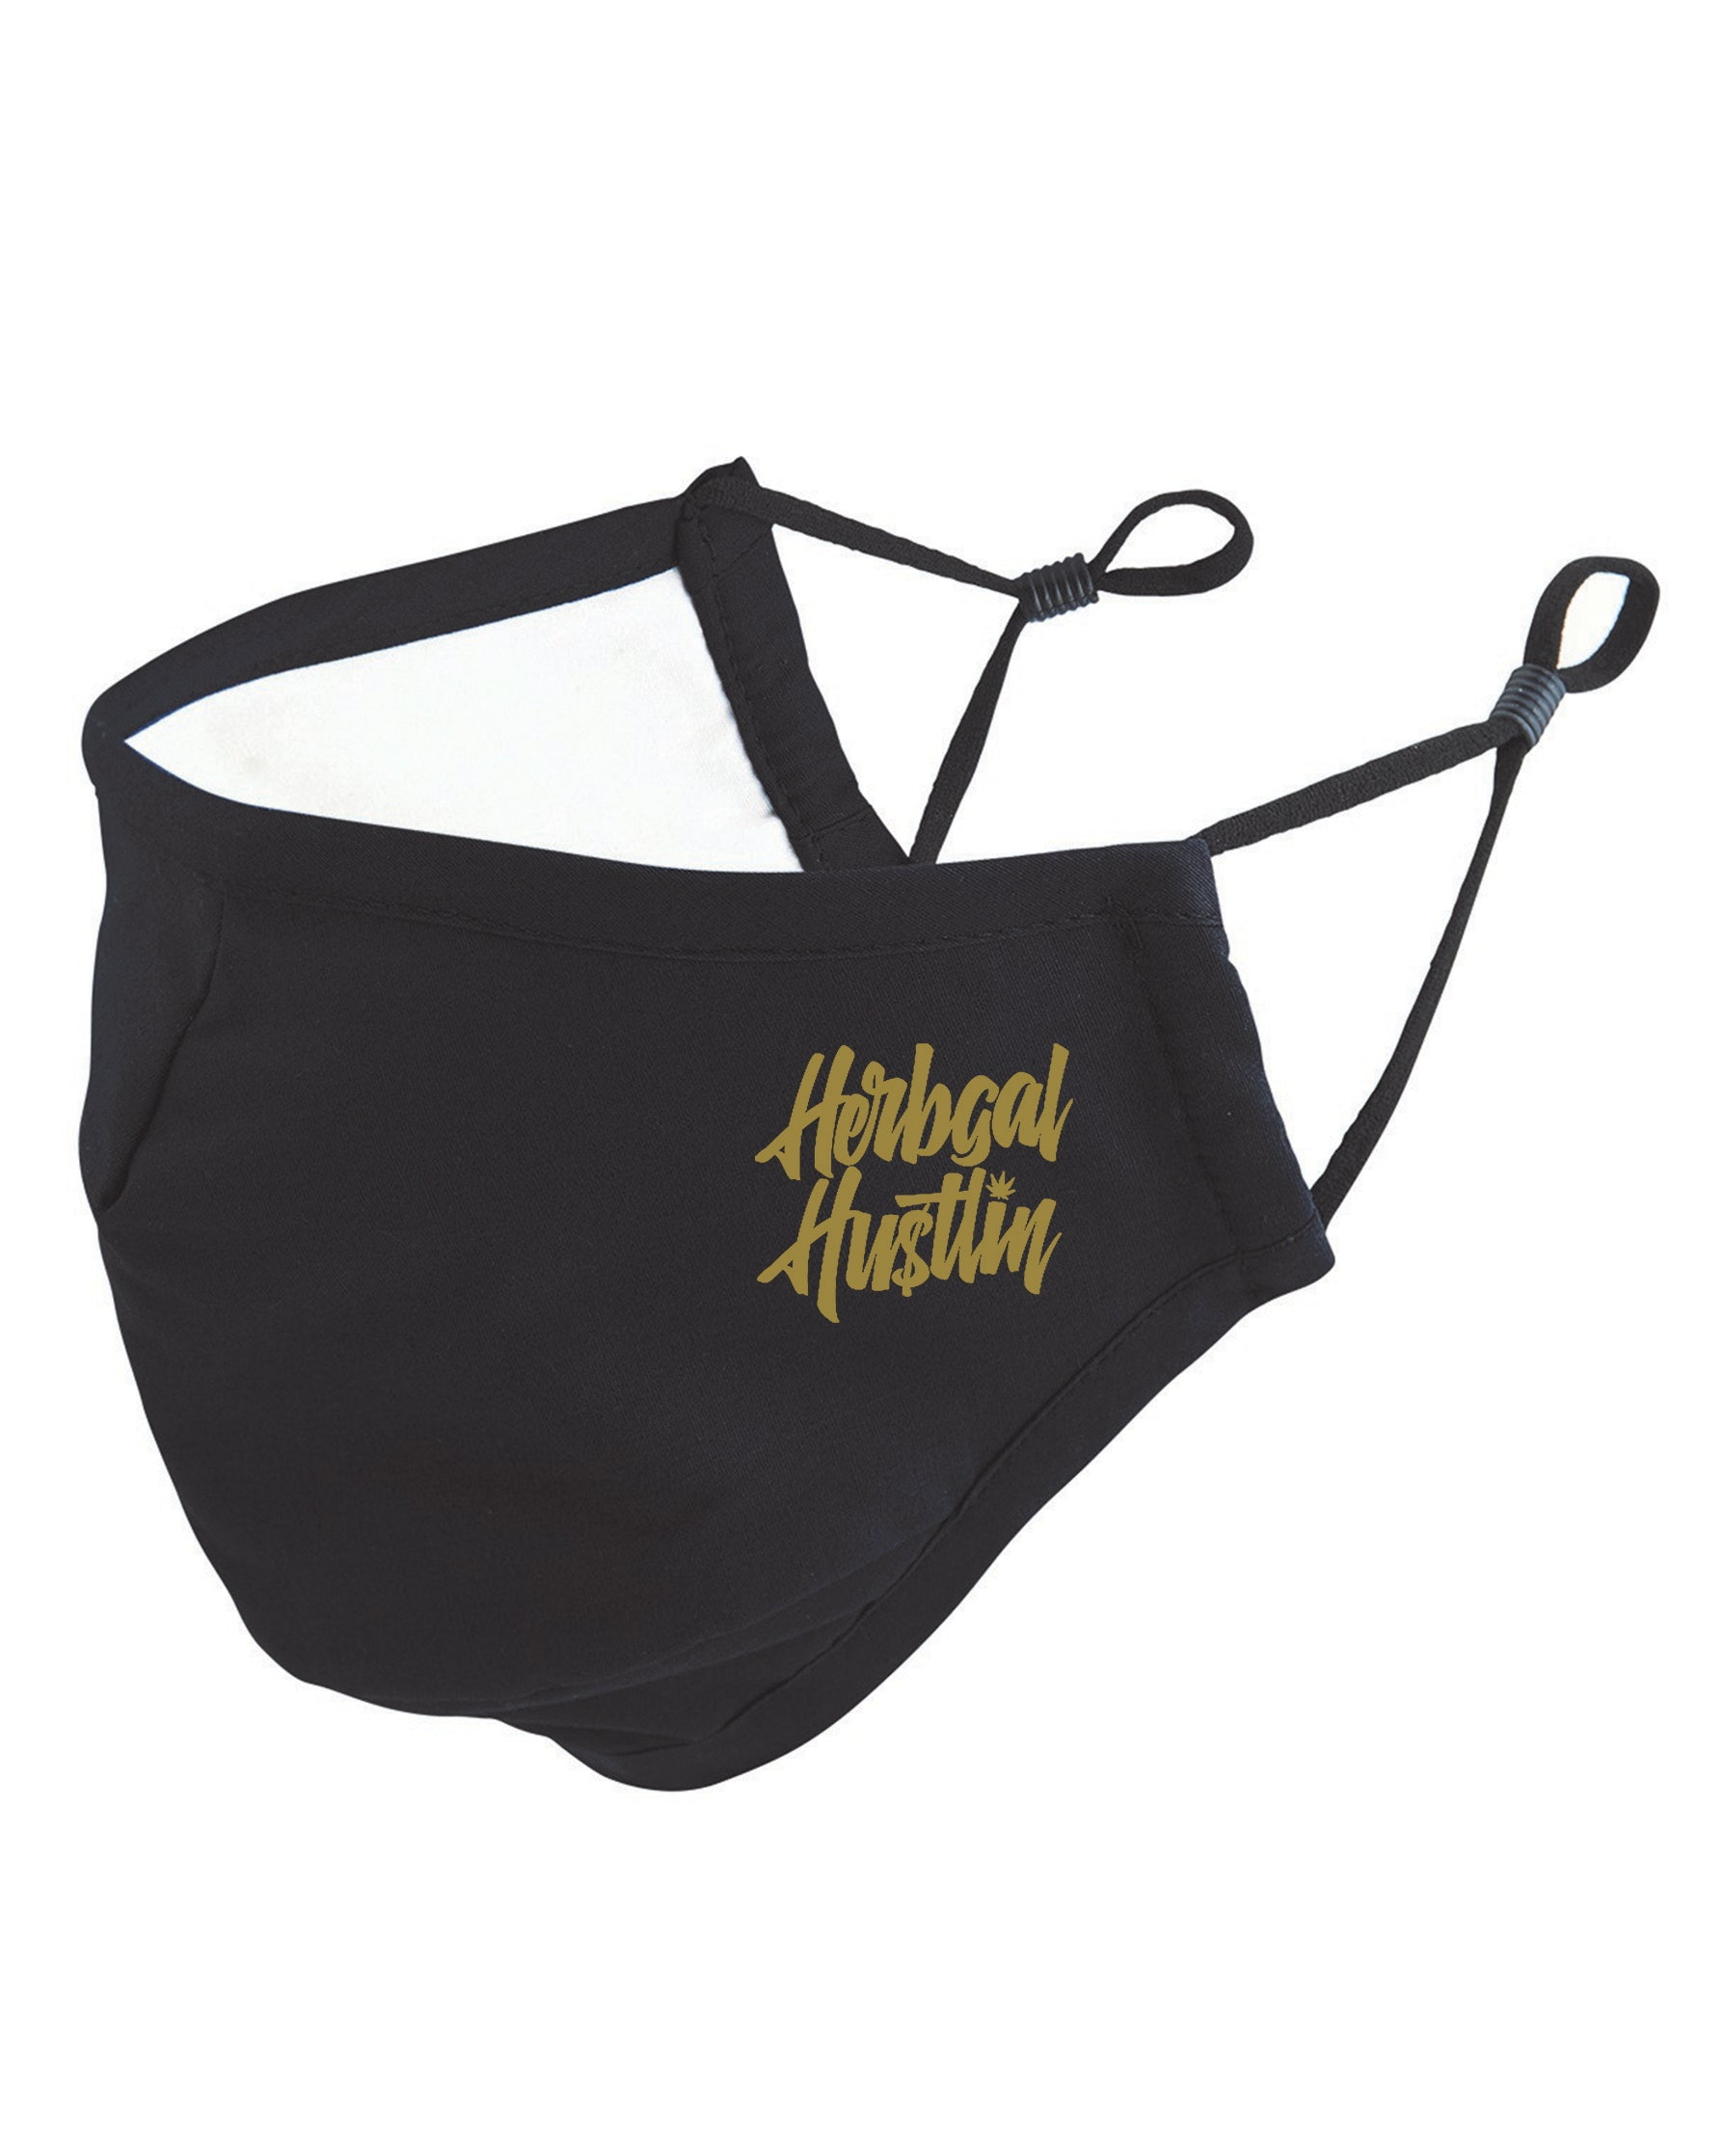 Herbgal Hustlin Script 3 Layer Mask - Black/Gold - Front